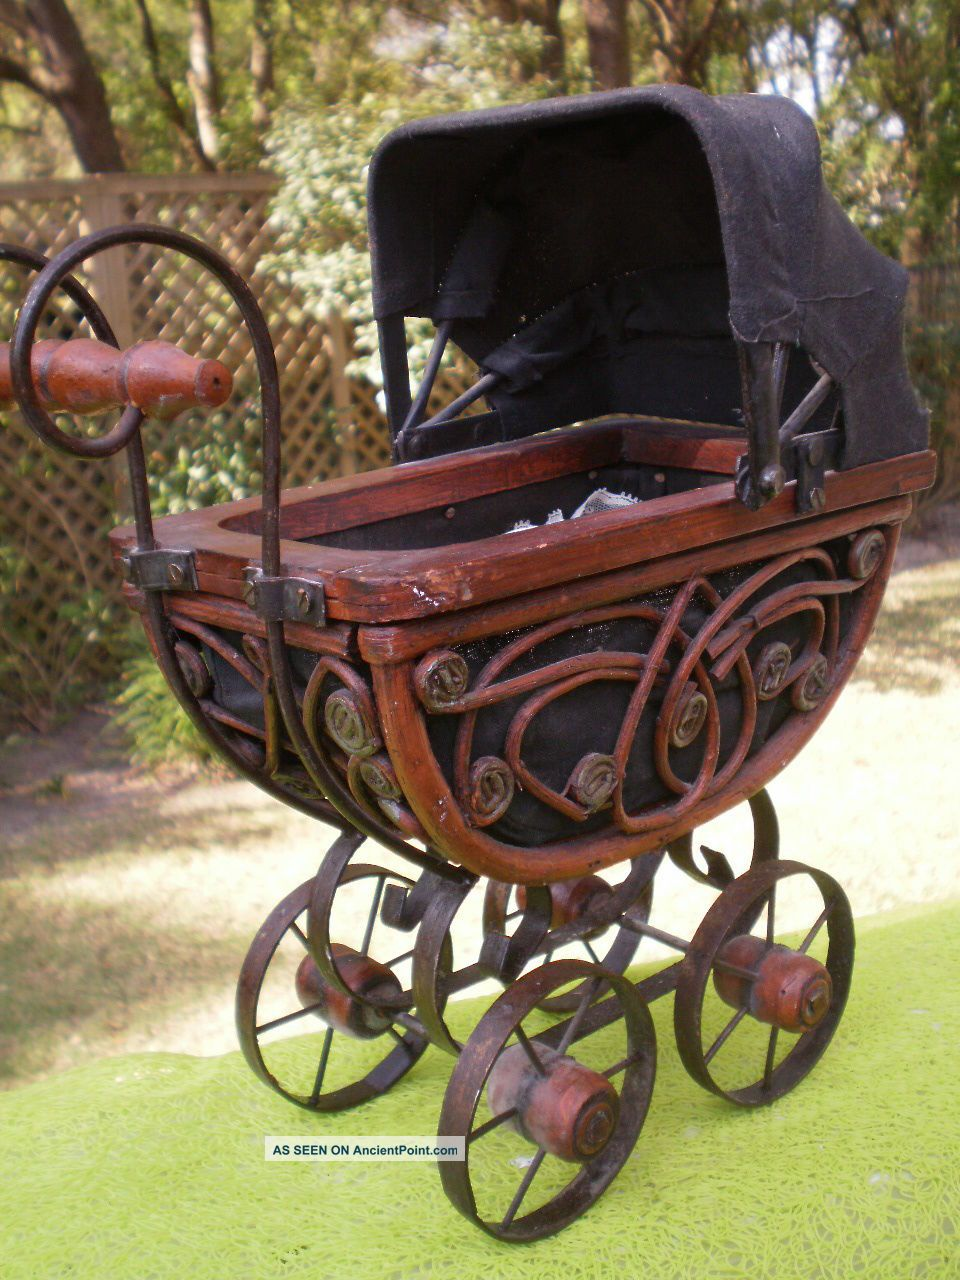 Vintage Wicker Metal Baby Doll Carriage Pram Stroller Buggy Bassinet Victorian Baby Carriages & Buggies photo